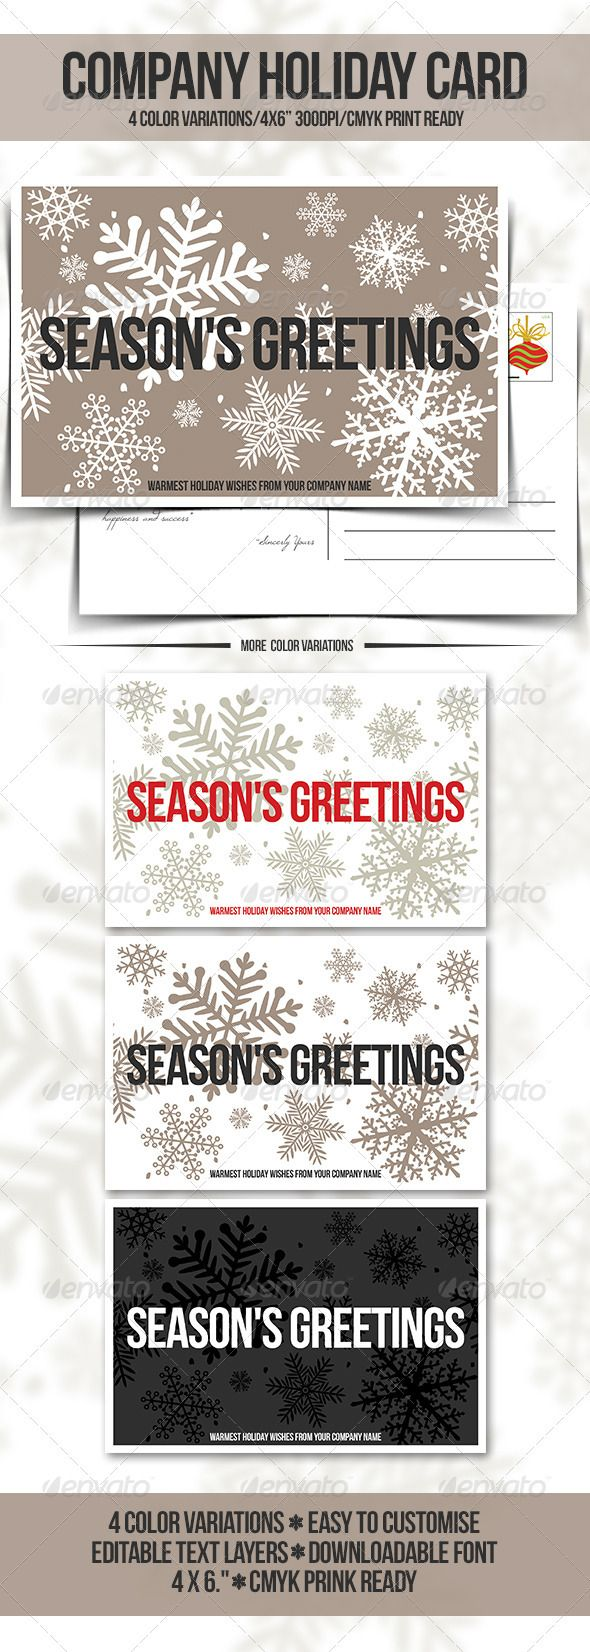 11 best crcf christmas cards images on pinterest christmas cards buy company holiday greeting card postcard by seeseo on graphicriver this psd file is setup at with bleeds cmyk and ready to print kristyandbryce Image collections